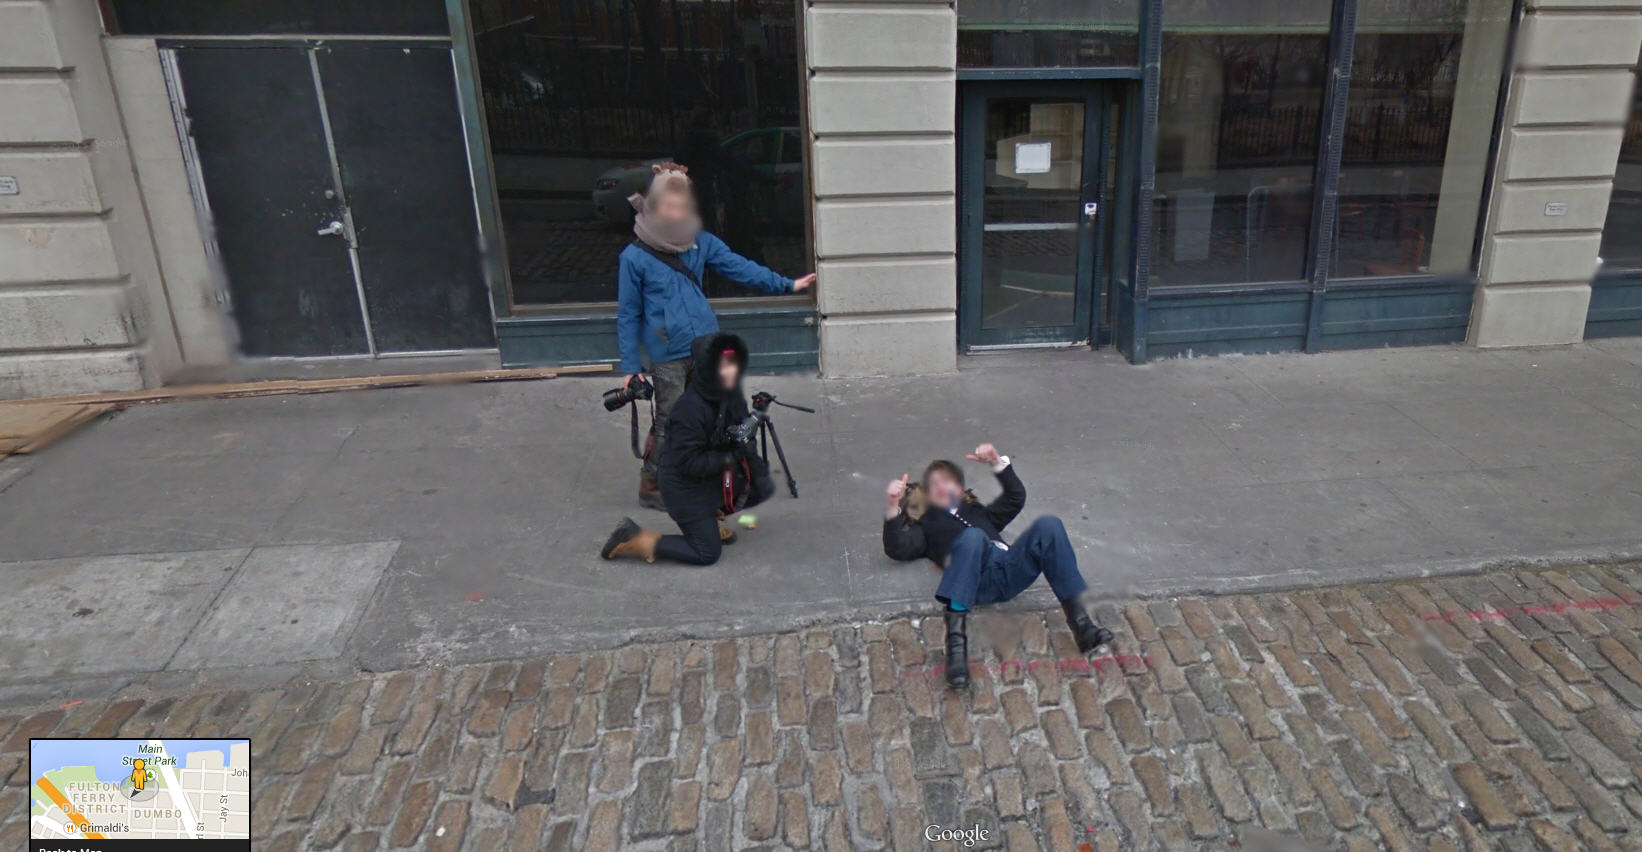 What are these guys taking a picture of?